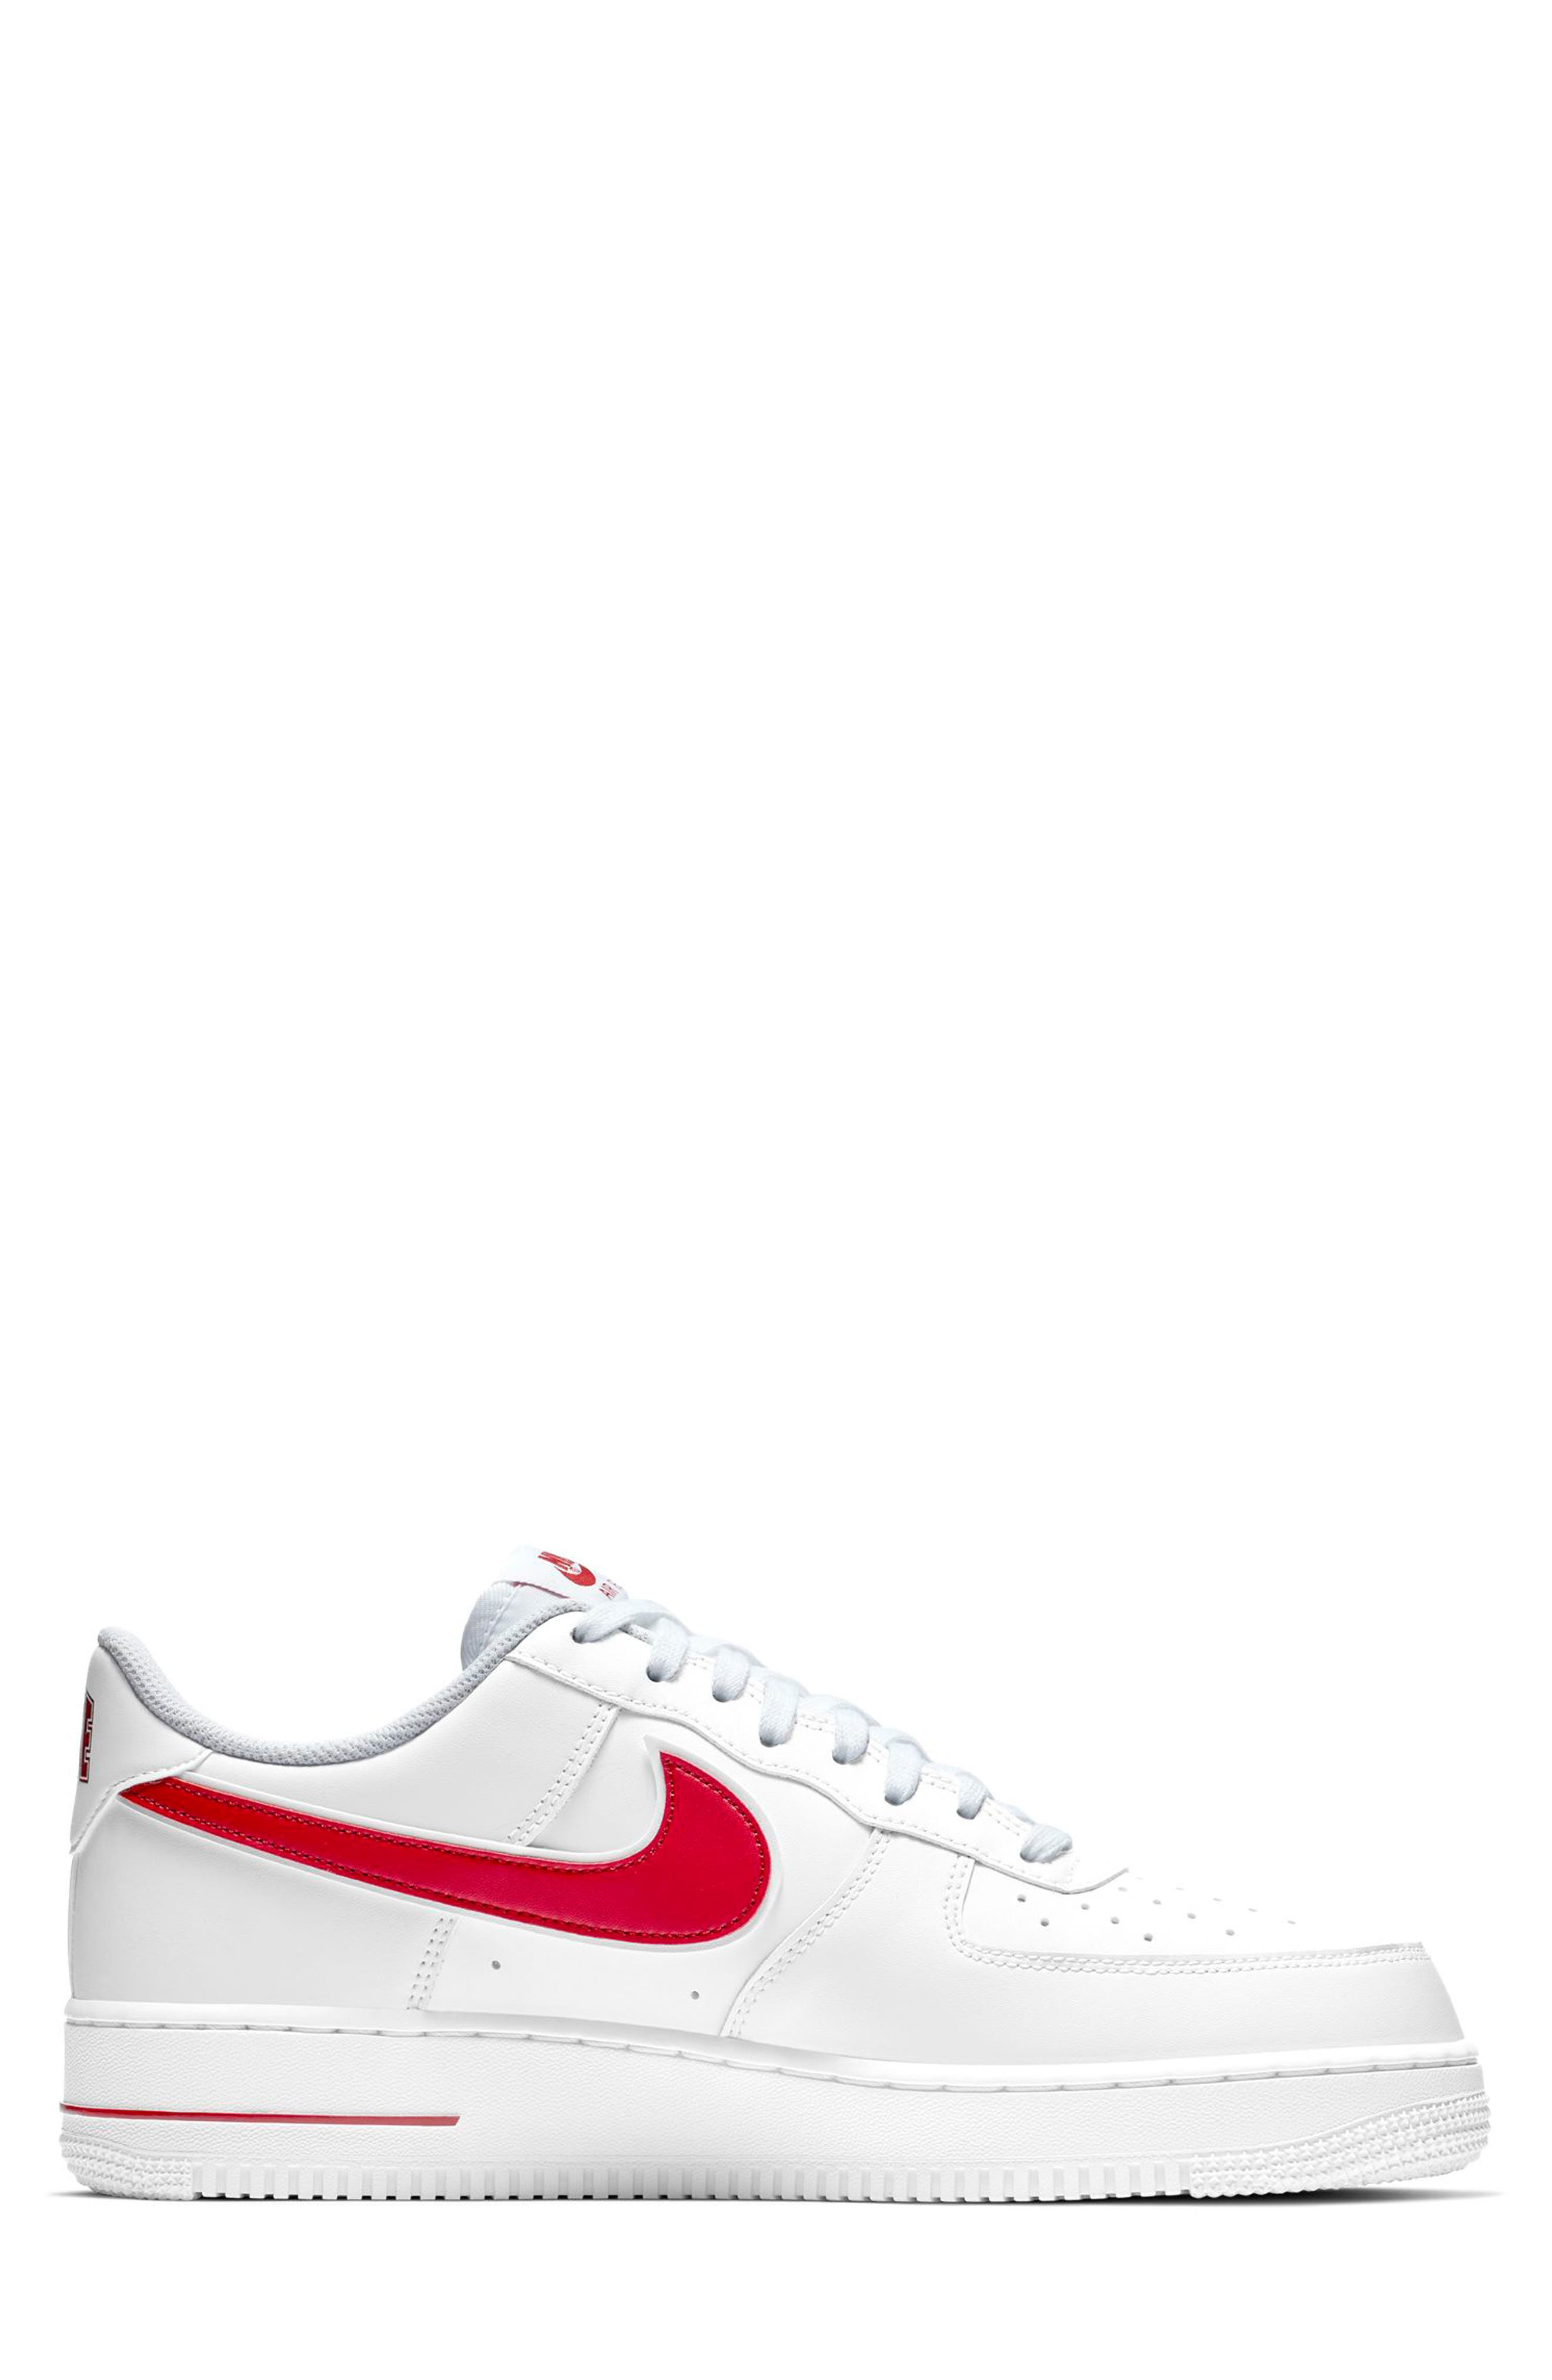 NIKE, Air Force 1 '07 3 Sneaker, Alternate thumbnail 2, color, WHITE/ GYM RED